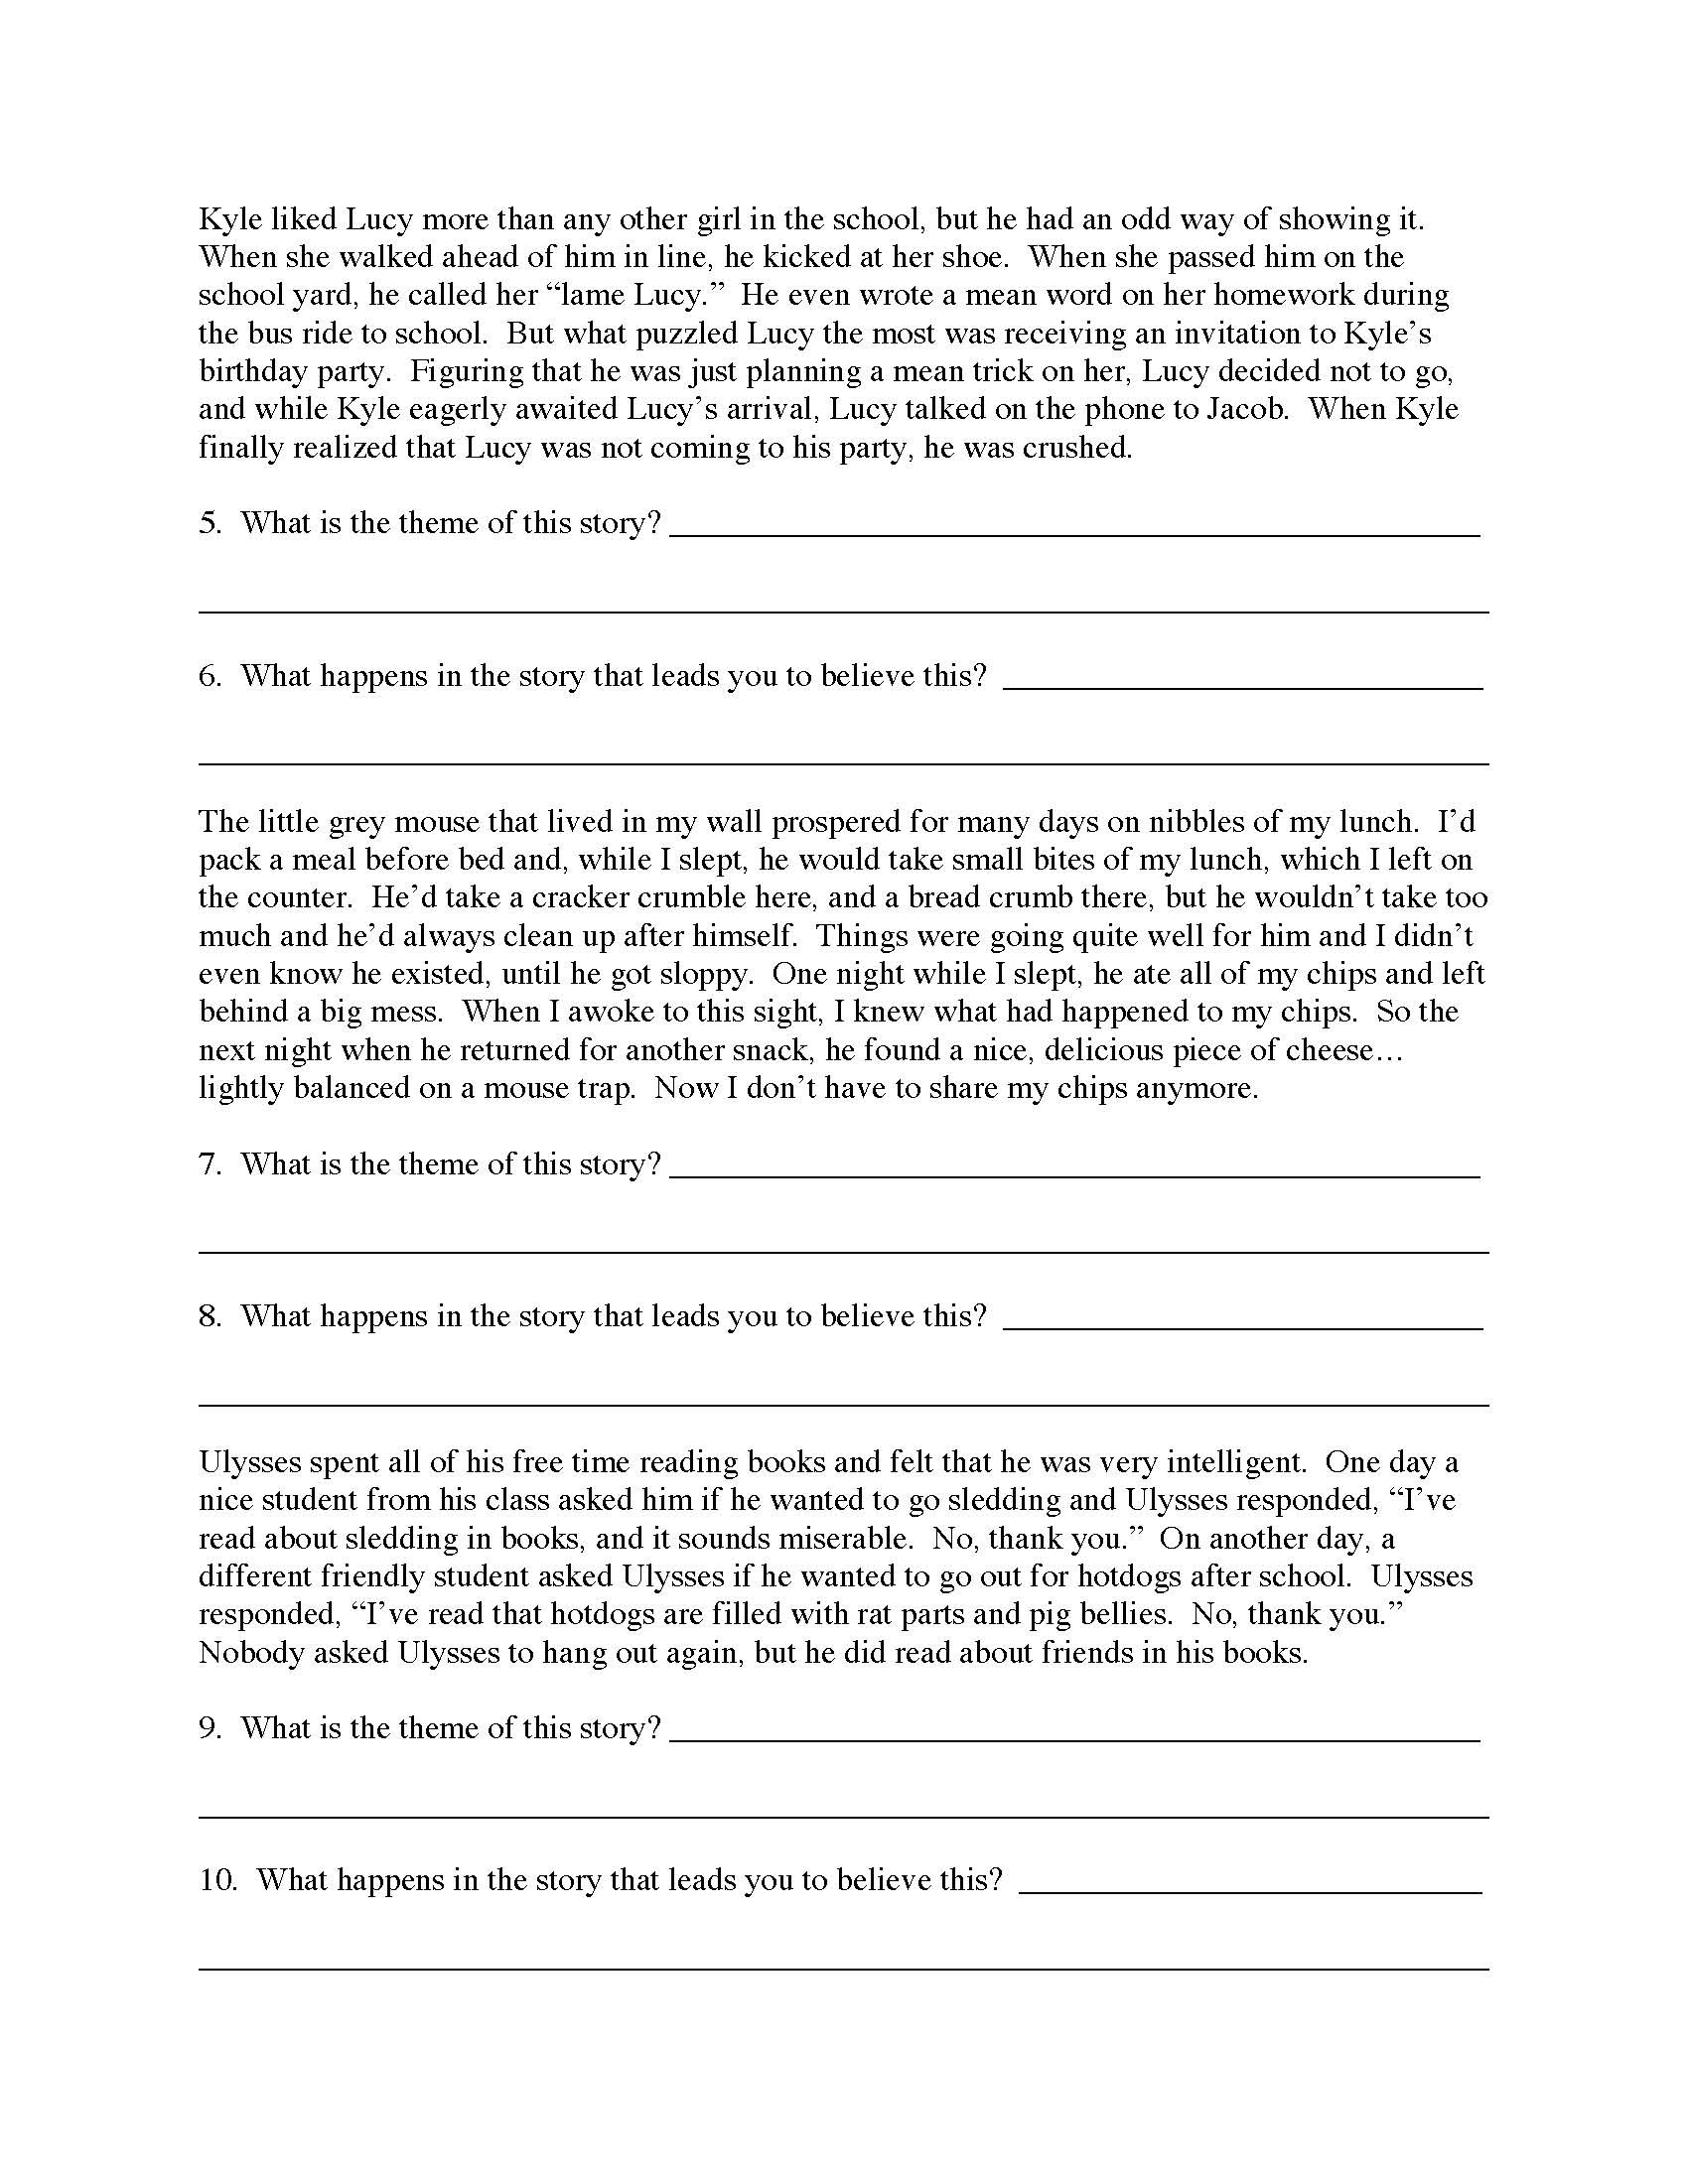 Theme Worksheets Grade 5 theme Worksheet 2